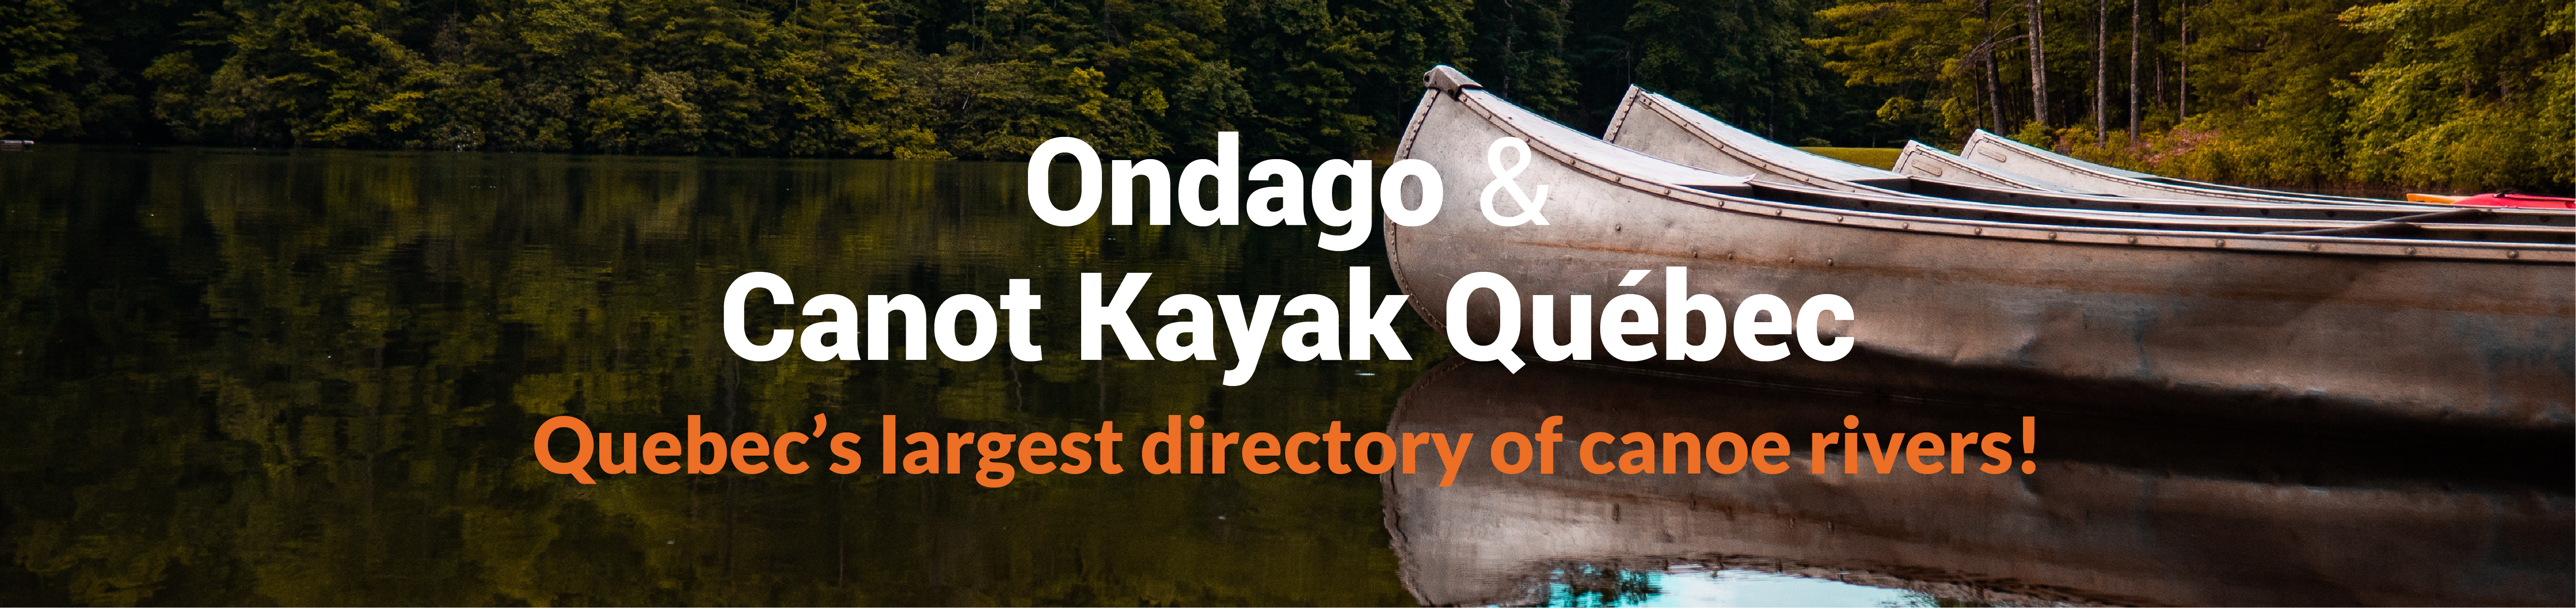 Quebec's largest directory of canoe rivers Canot Kayak Québec